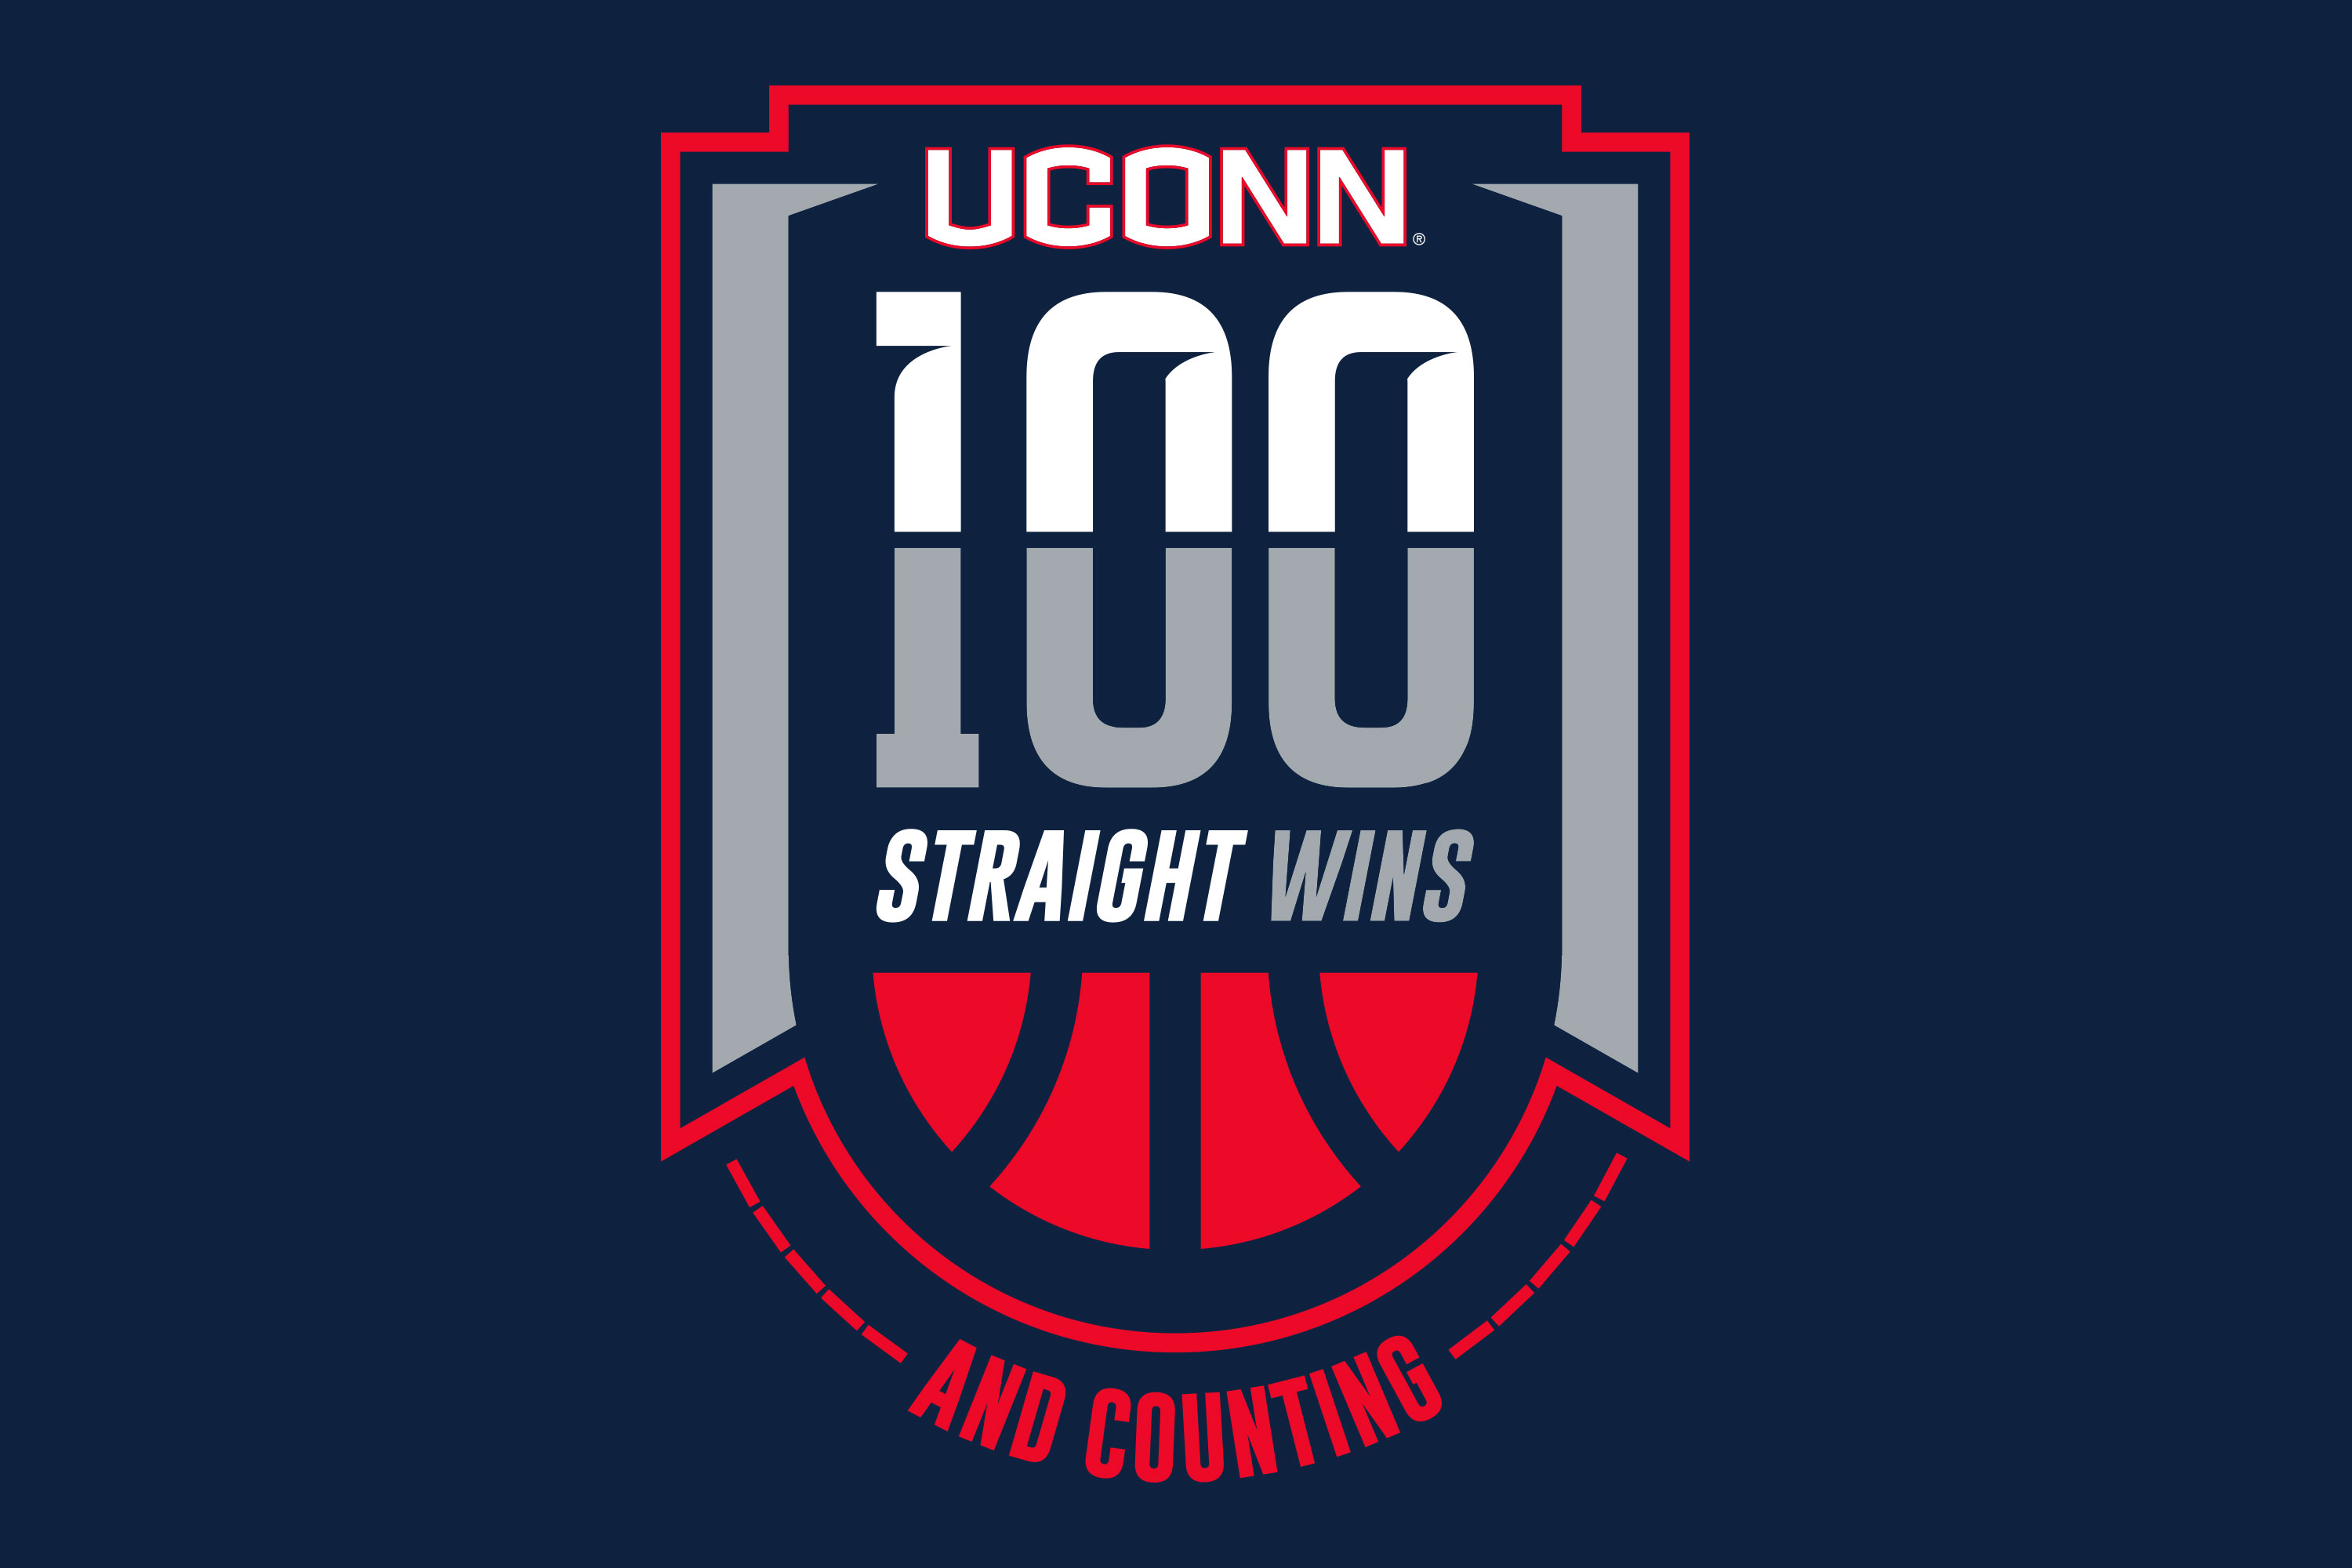 100 Facts About the Historic 100th Win by Women's Basketball